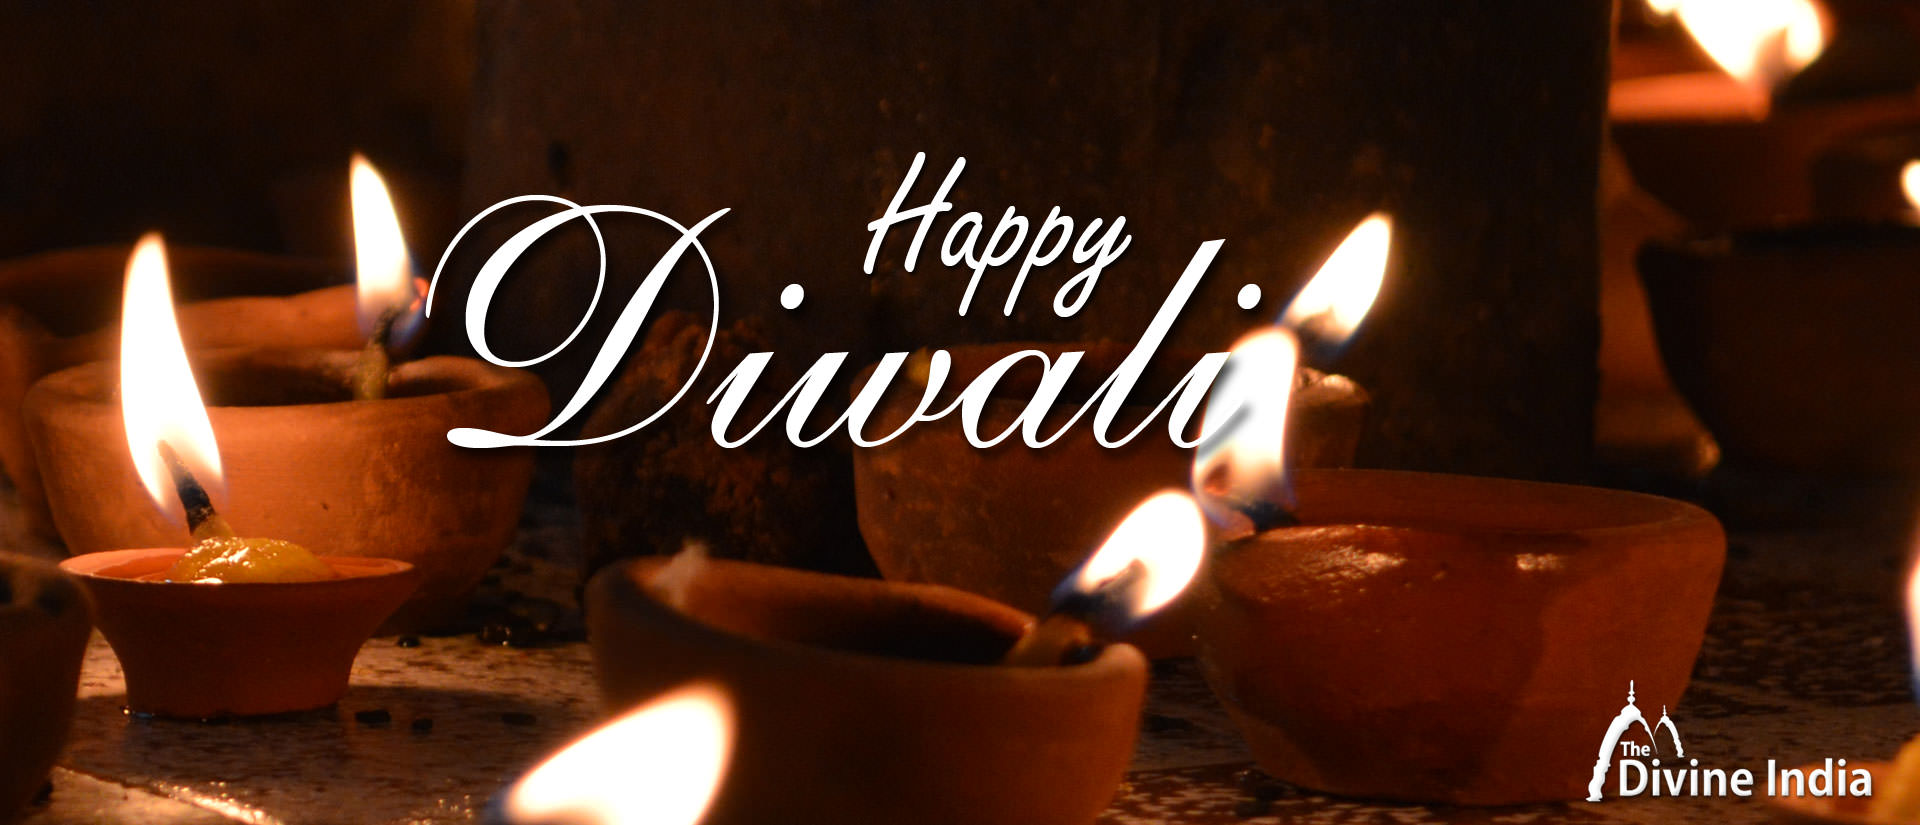 About the Diwali festival